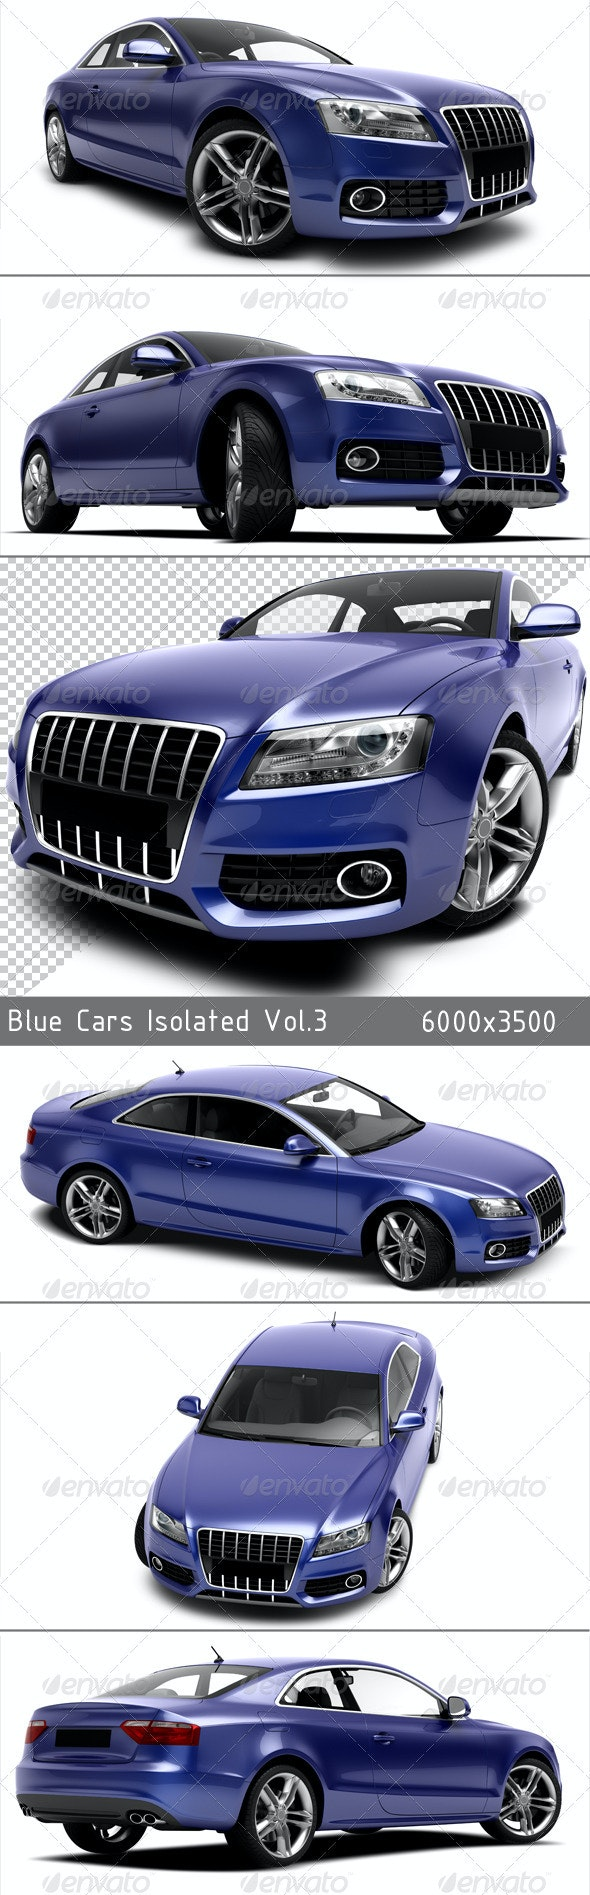 Blue Cars Isolated VOL.3 - Objects 3D Renders